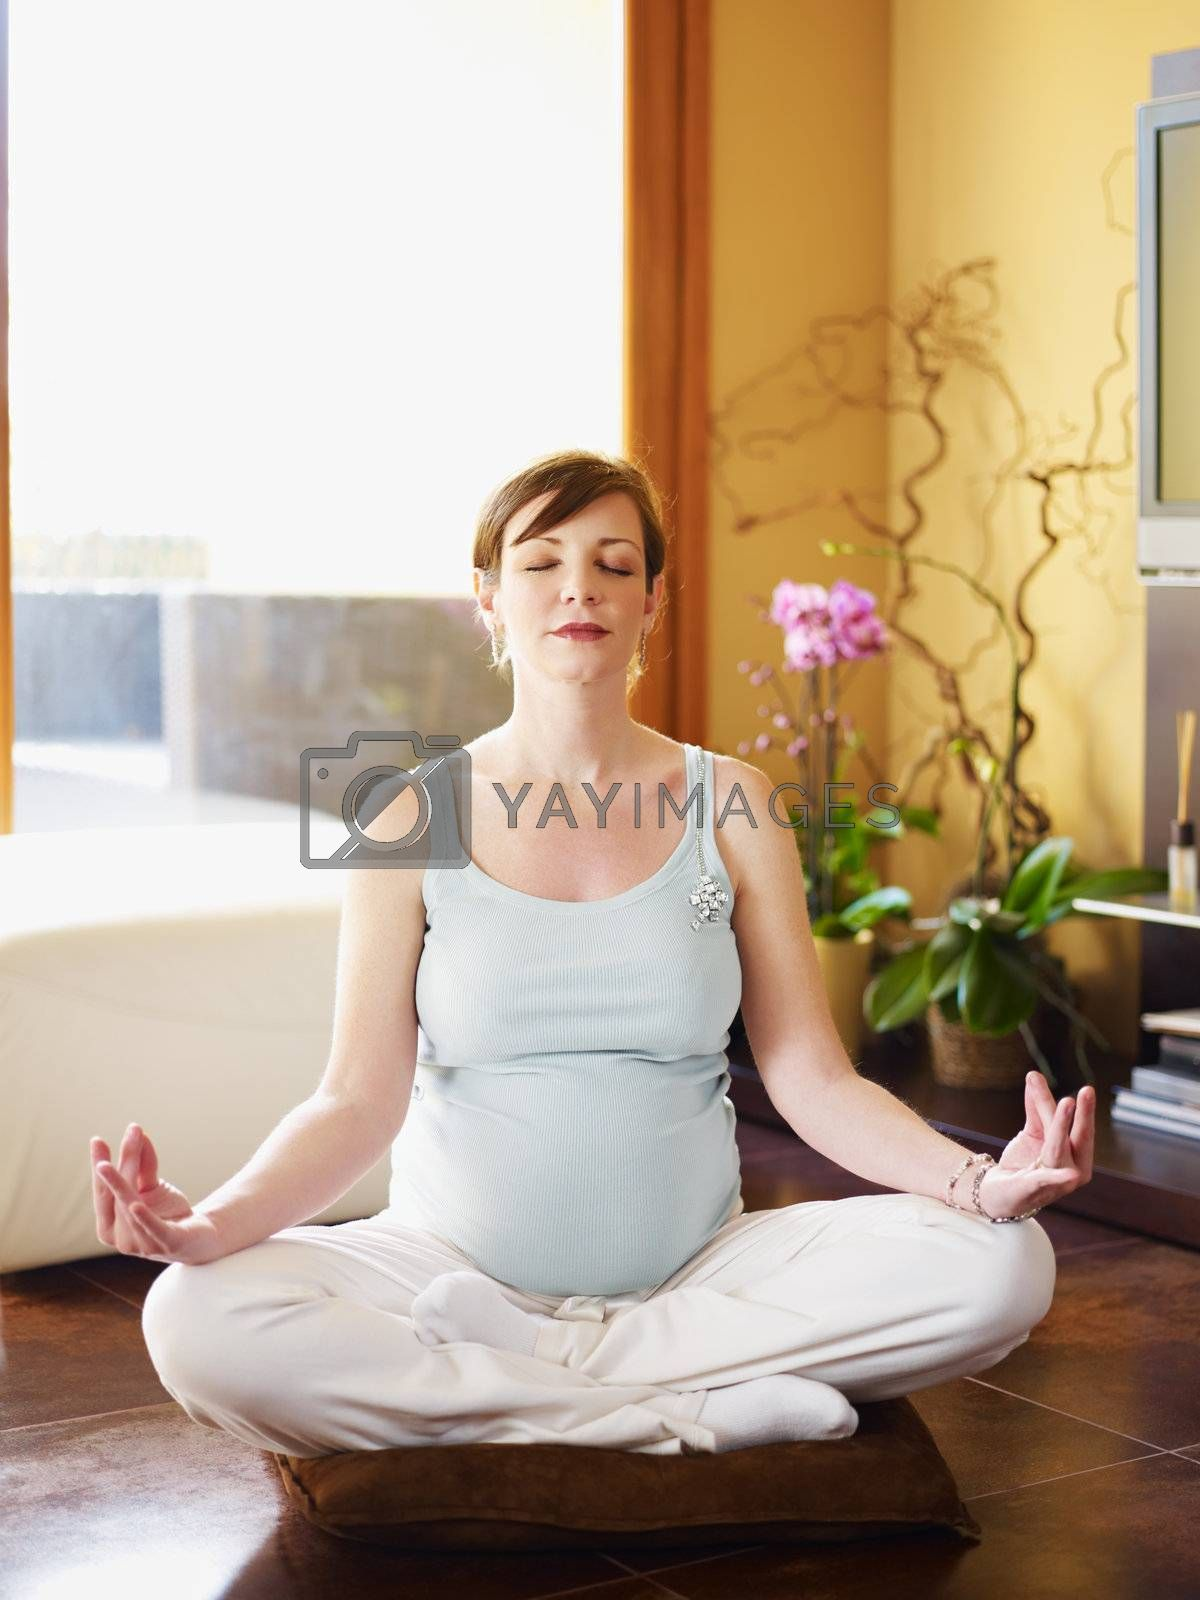 italian 6 months pregnant woman sitting with crossed legs doing yoga exercise at home. Vertical shape; full length, front view. Copy space